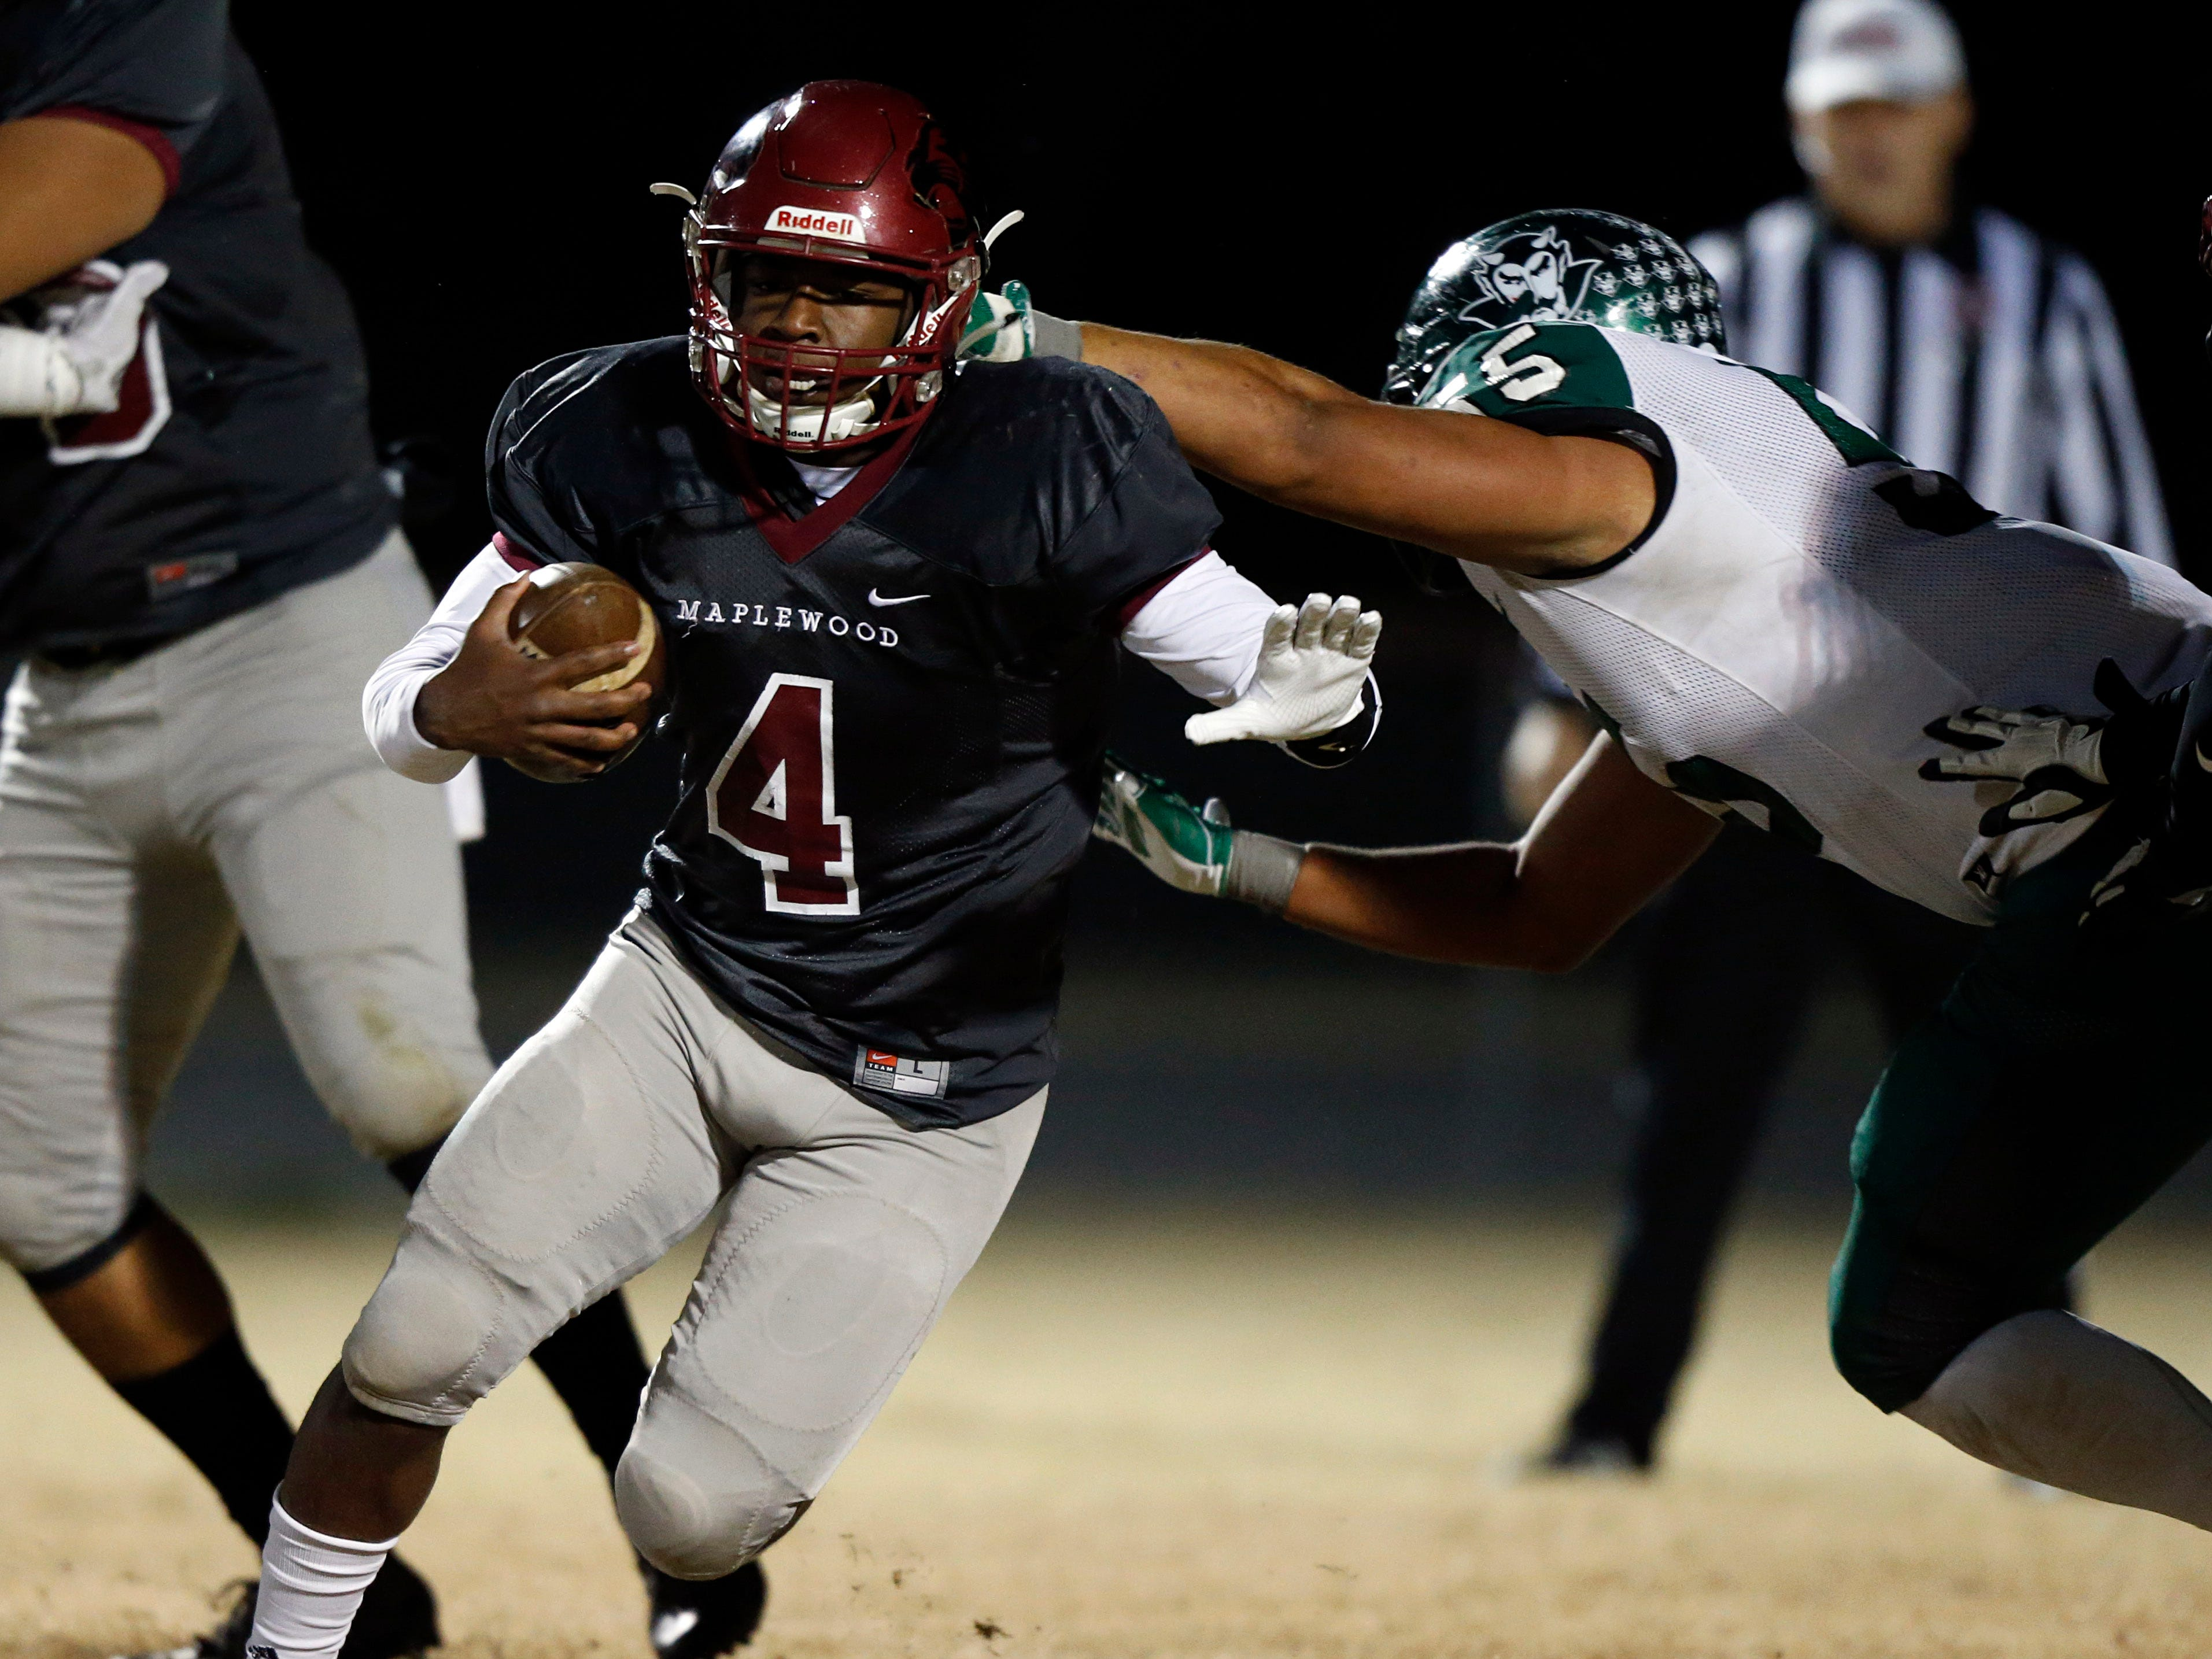 Maplewood's Bobo Hodges tries to escape from Greeneville's Logan Shipley during their game Friday, Nov. 23, 2018, in Nashville, TN.